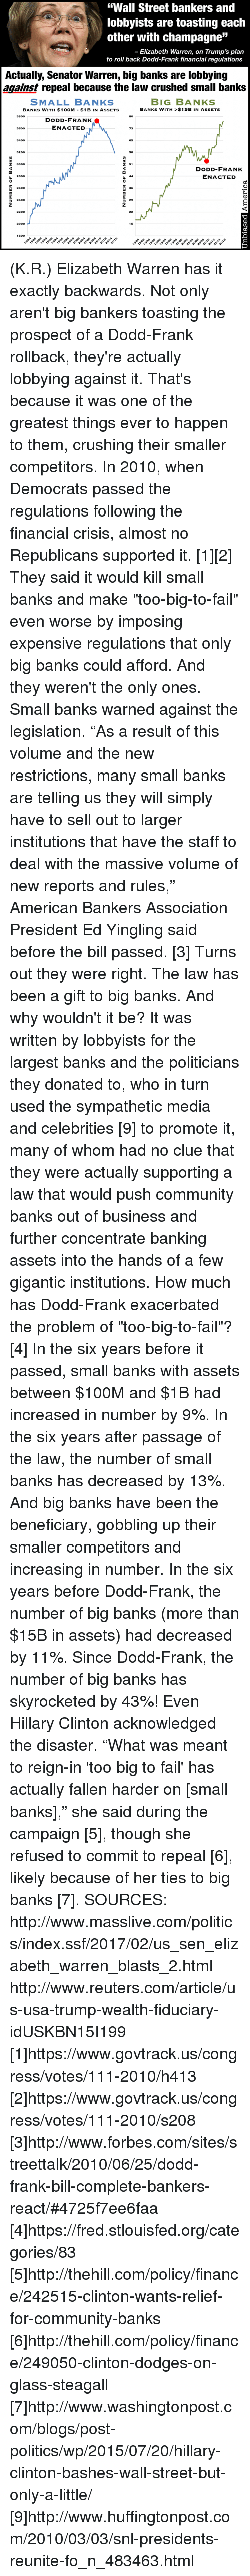 """Dank, Elizabeth Warren, and Finance: """"Wall Street bankers and  lobbyists are toasting each  other with champagne  JJ  Elizabeth Warren, on Trump's plan  to roll back Dodd-Frank financial regulations  Actually, Senator Warren, big banks are lobbying  against repeal because the law crushed small banks  BIG BANKS  SMALL BANKS  BANKS WITH $15B IN ASSETS  BANKs WITH $100M $1B IN AssETs  3800  DODD-FRANK  ENACTED  N  3600  3400  6S  3200  3000  51  DODD-FRANK  ENACTED  2800  2600  D 2400  29  2200  15  1800 (K.R.) Elizabeth Warren has it exactly backwards.  Not only aren't big bankers toasting the prospect of a Dodd-Frank rollback, they're actually lobbying against it.  That's because it was one of the greatest things ever to happen to them, crushing their smaller competitors.  In 2010, when Democrats passed the regulations following the financial crisis, almost no Republicans supported it. [1][2] They said it would kill small banks and make """"too-big-to-fail"""" even worse by imposing expensive regulations that only big banks could afford.   And they weren't the only ones. Small banks warned against the legislation. """"As a result of this volume and the new restrictions, many small banks are telling us they will simply have to sell out to larger institutions that have the staff to deal with the massive volume of new reports and rules,"""" American Bankers Association President Ed Yingling said before the bill passed. [3]  Turns out they were right. The law has been a gift to big banks. And why wouldn't it be? It was written by lobbyists for the largest banks and the politicians they donated to, who in turn used the sympathetic media and celebrities [9] to promote it, many of whom had no clue that they were actually supporting a law that would push community banks out of business and further concentrate banking assets into the hands of a few gigantic institutions.  How much has Dodd-Frank exacerbated the problem of """"too-big-to-fail""""? [4] In the six years before it passed, small ba"""